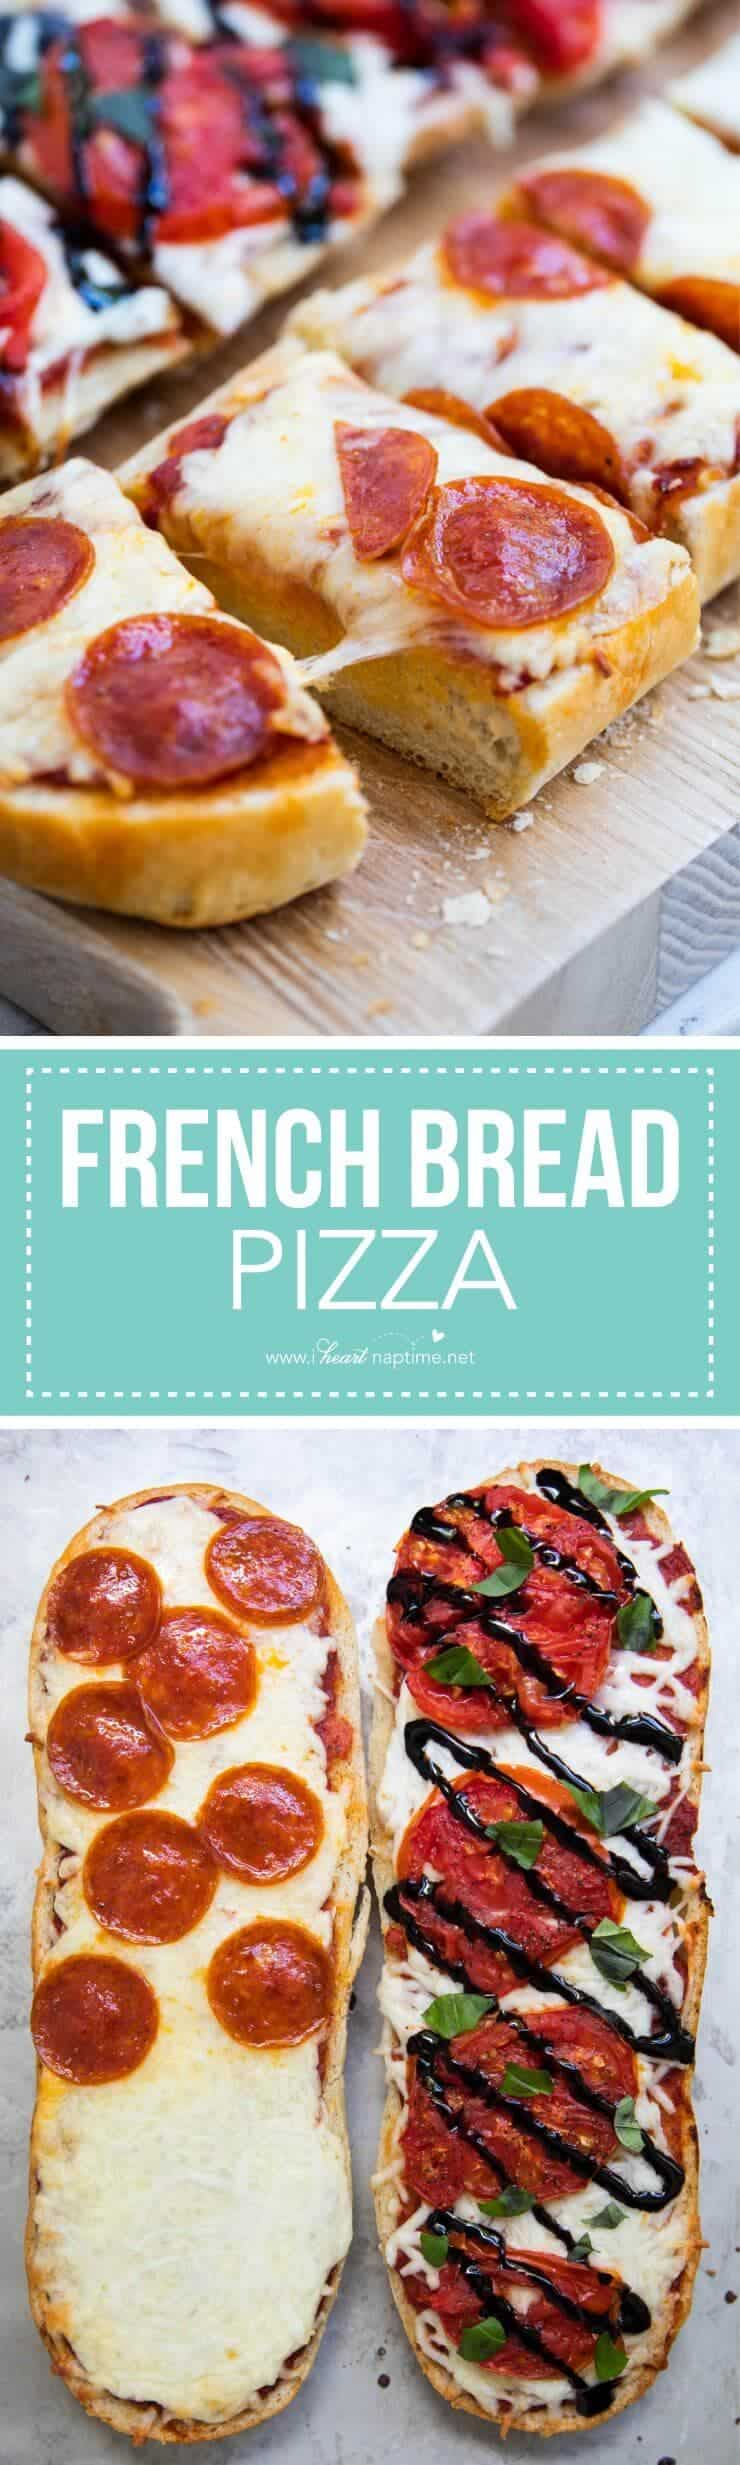 Homemade garlic french bread pizza -so easy and delicious! Easy to customize with all your favorite toppings! A simple recipe that kids and adults will love.